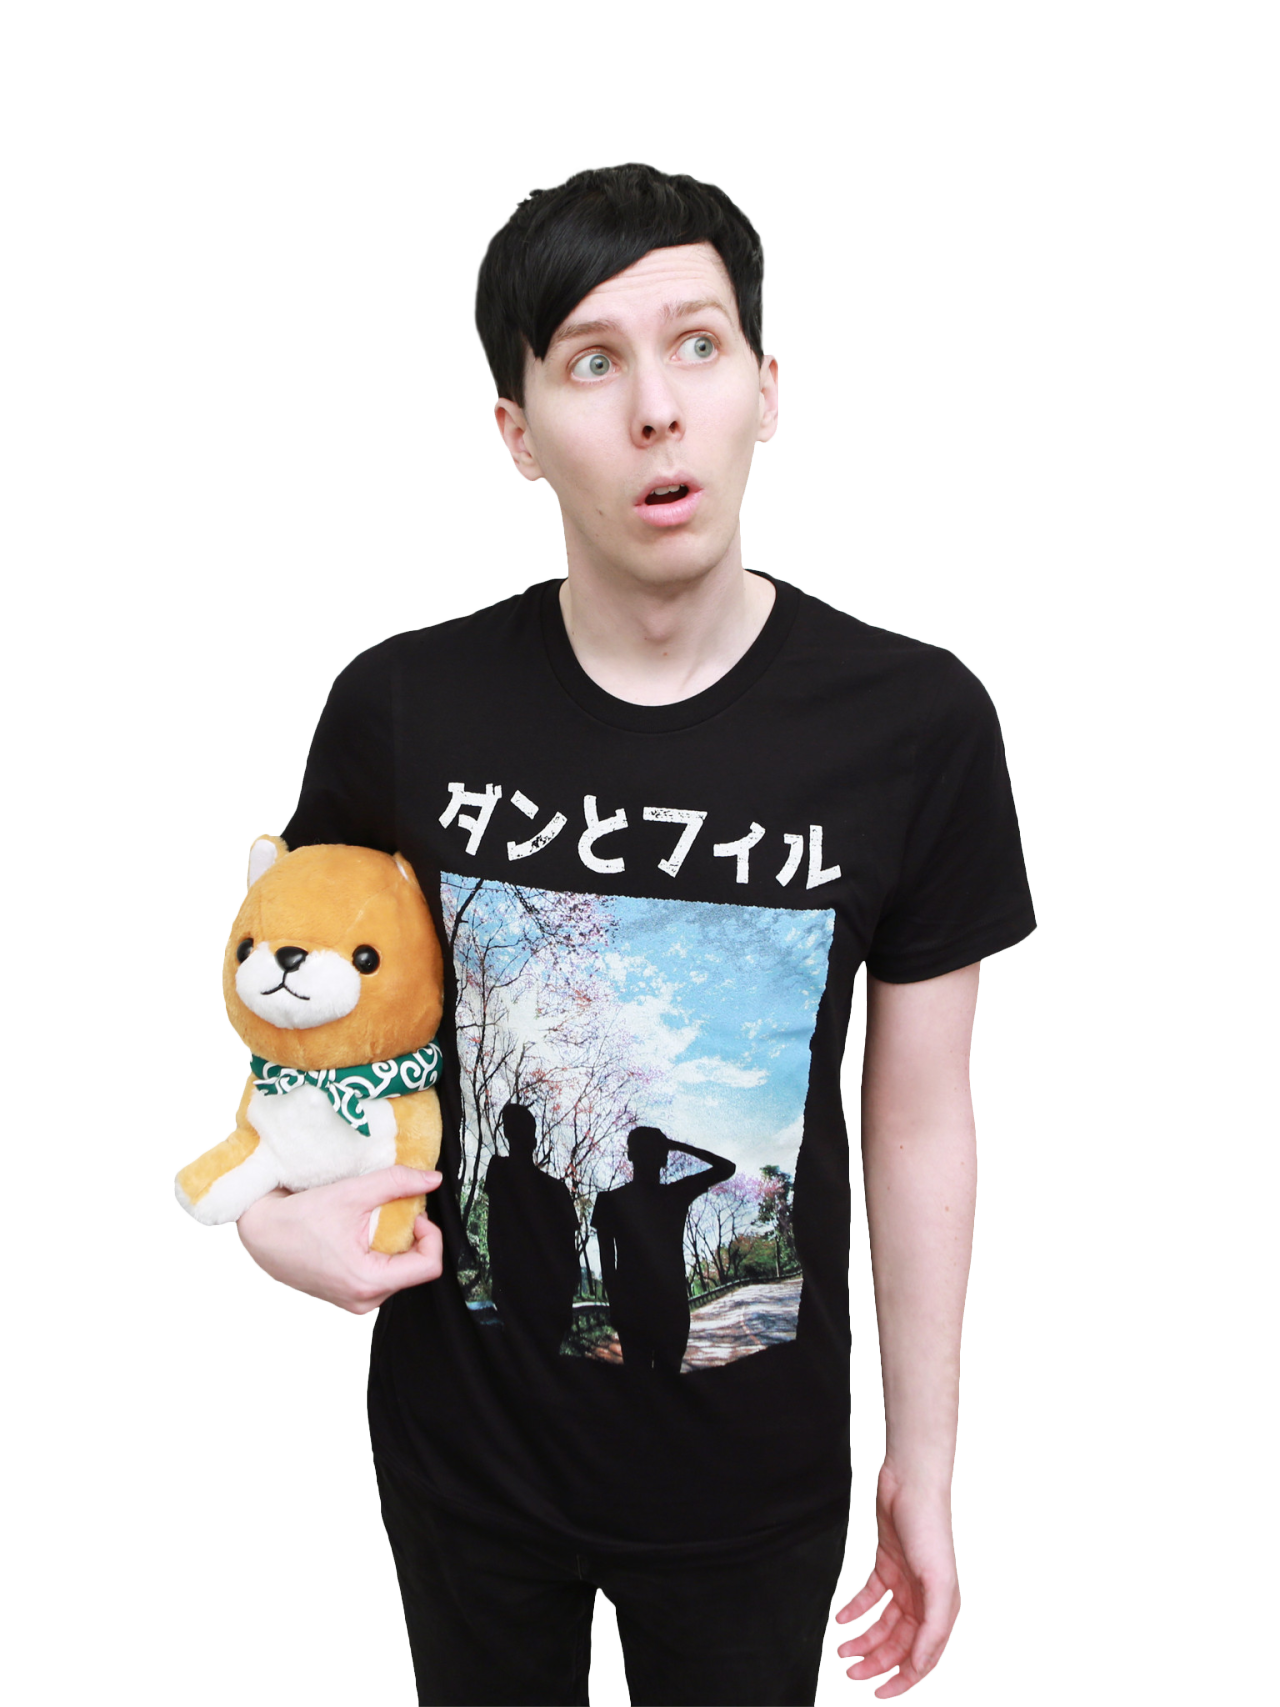 Amazingphil transparent profile. Dan and phil pngs